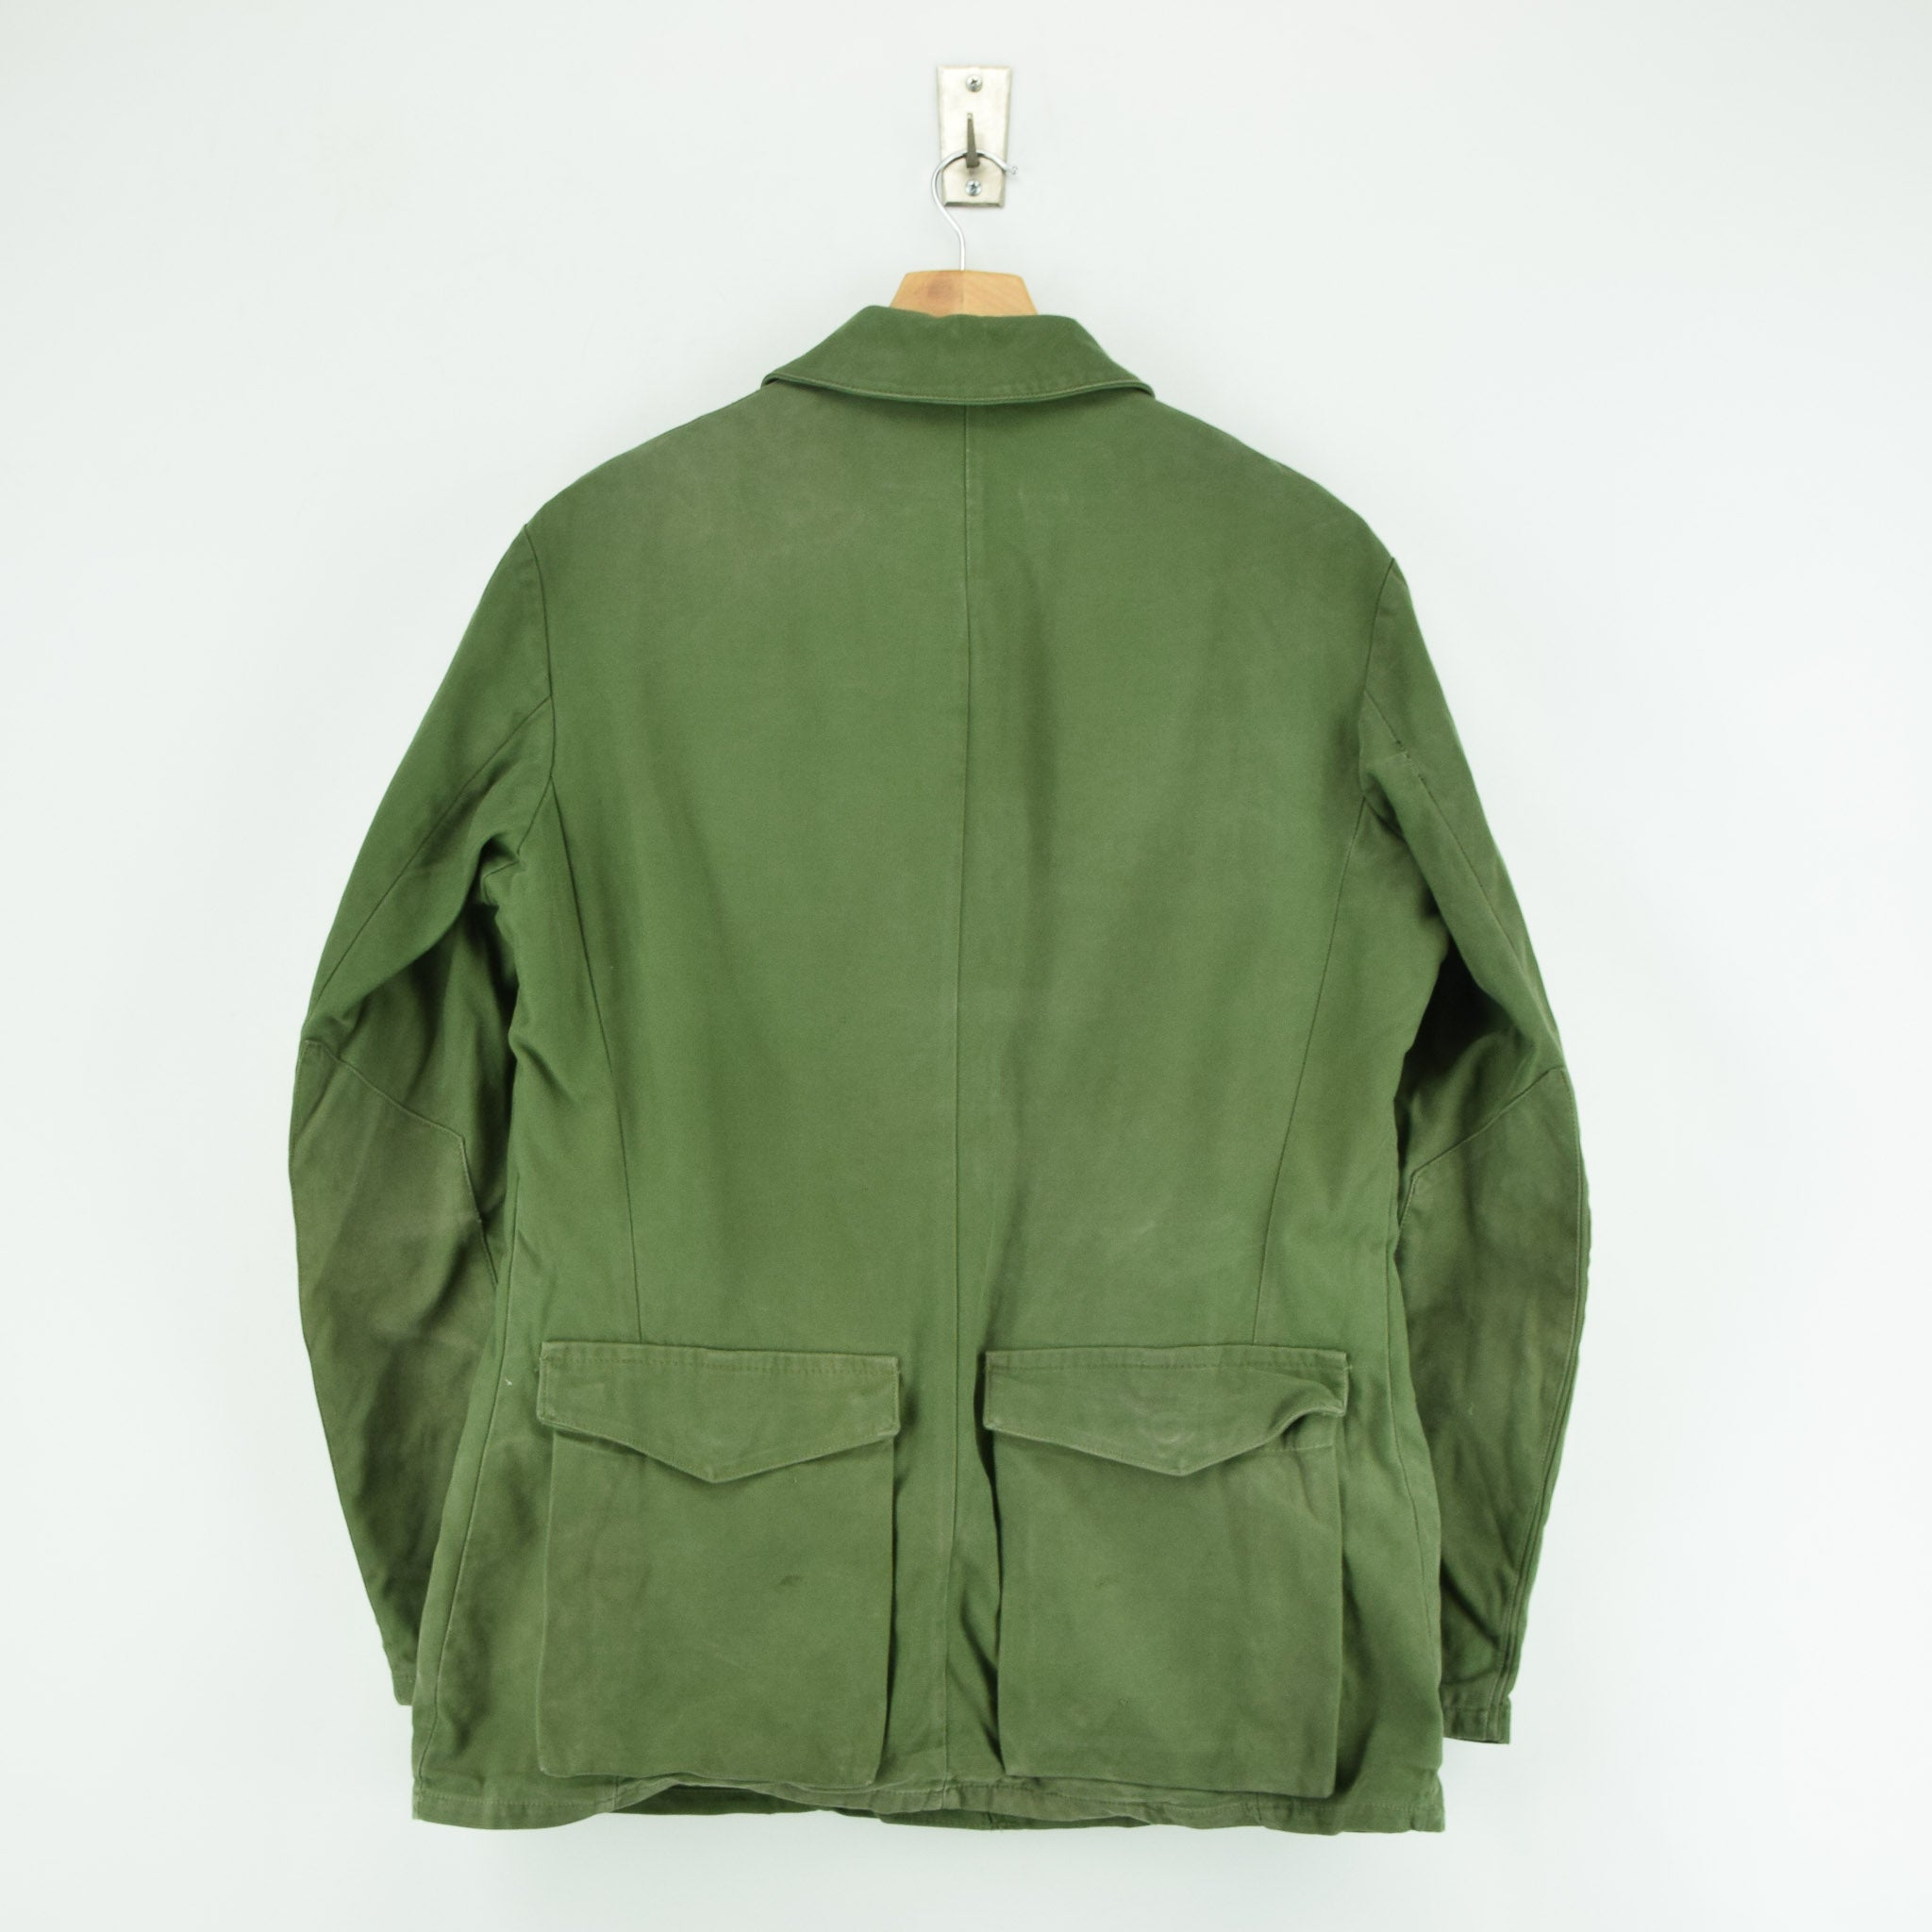 Vintage Well Worn Swedish M59 Field Military Olive Green Worker Style Jacket M back